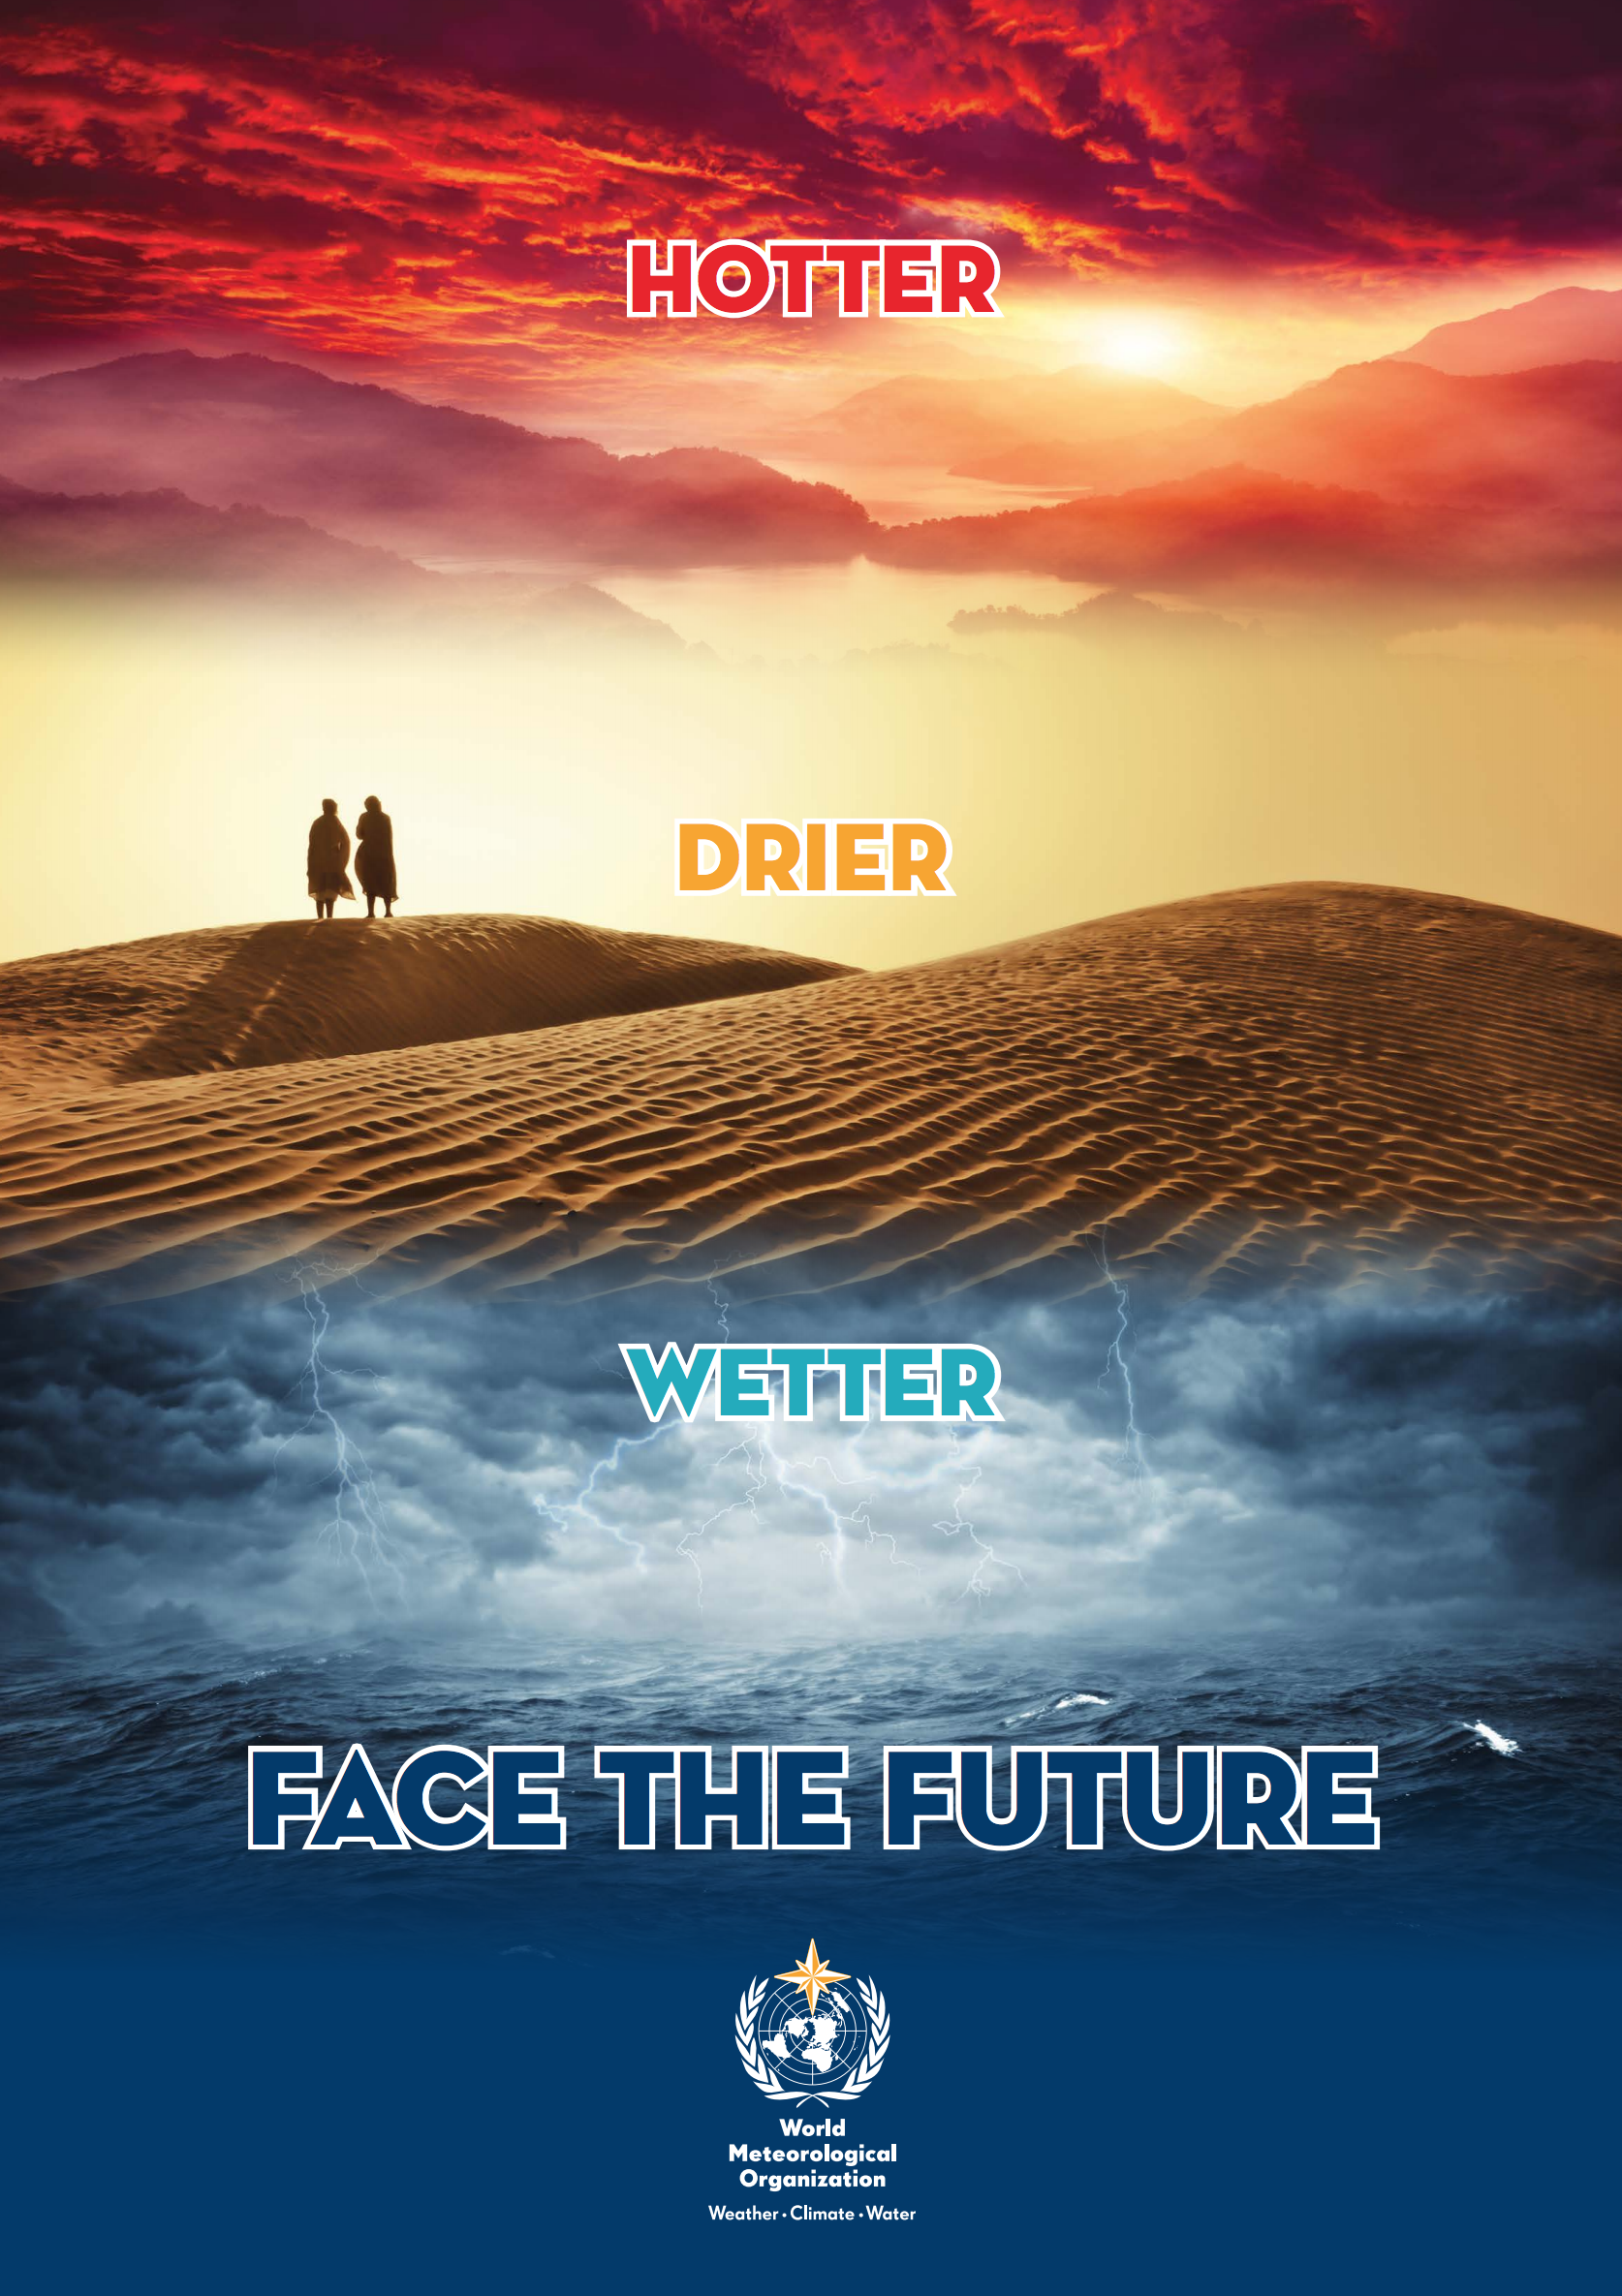 Hotter, drier, wetter. Face the future.